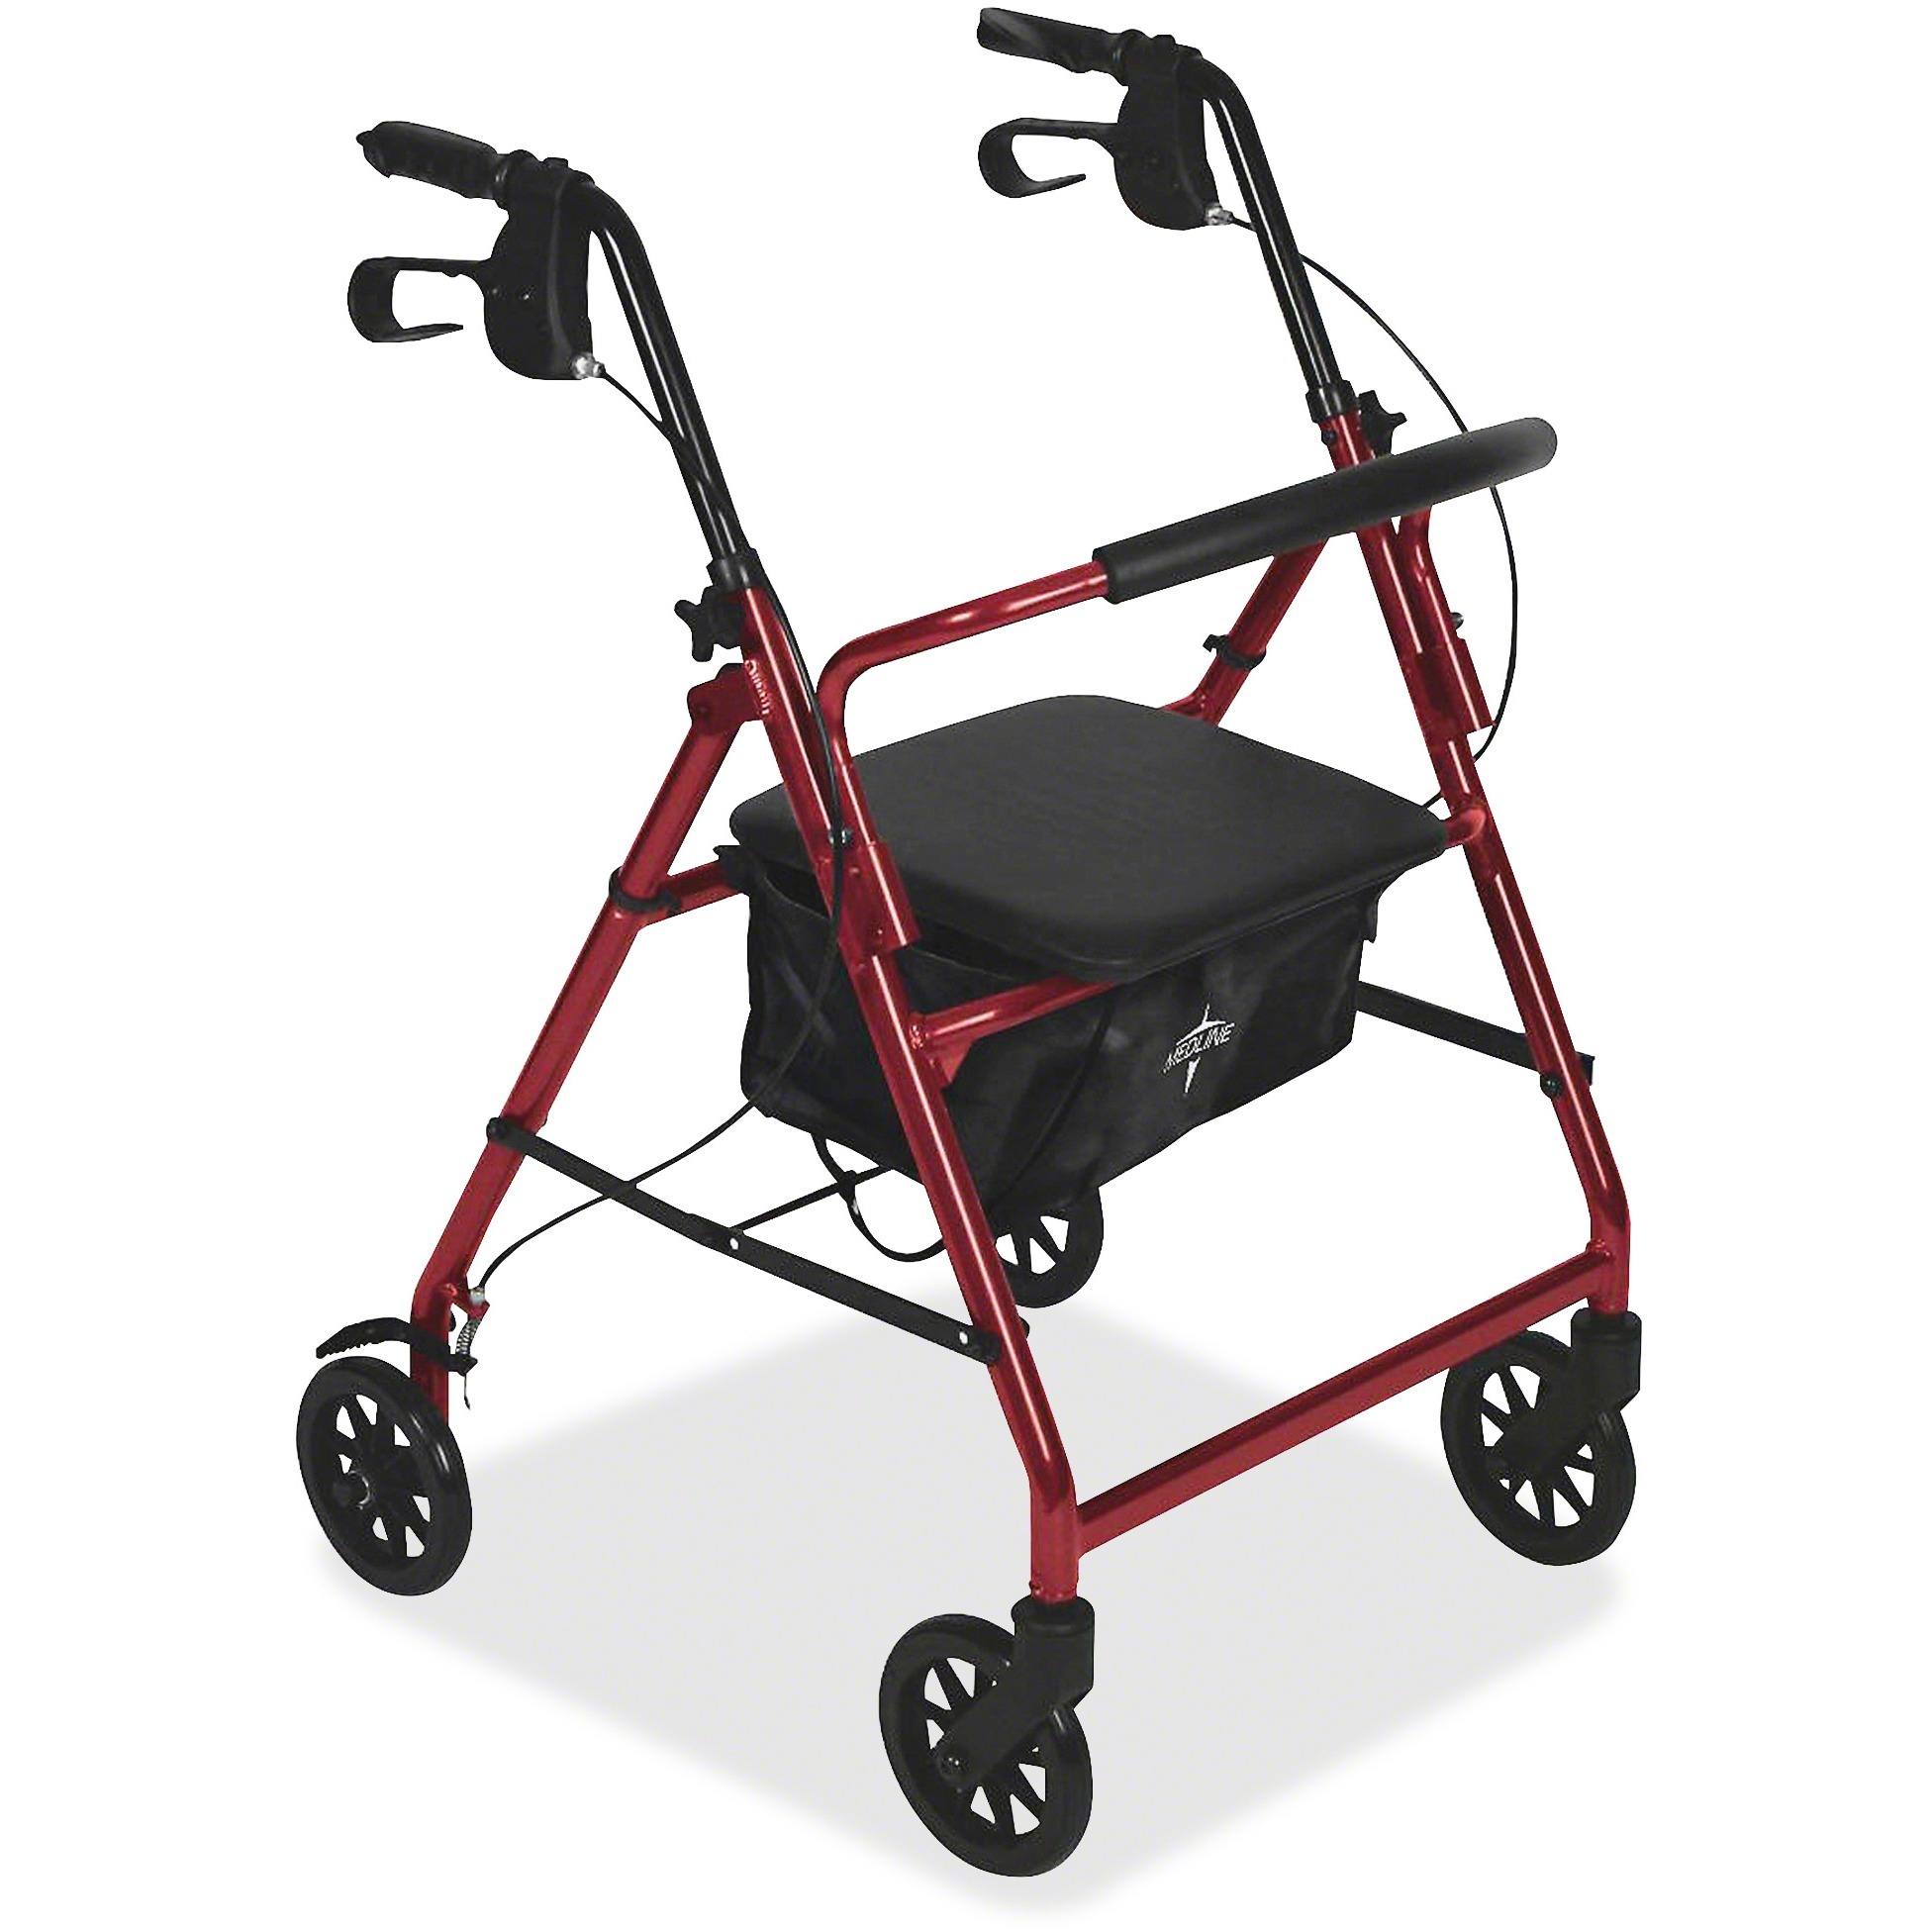 Medline, MIIMDS86850ES, Basic Steel Rollators, 1, Red